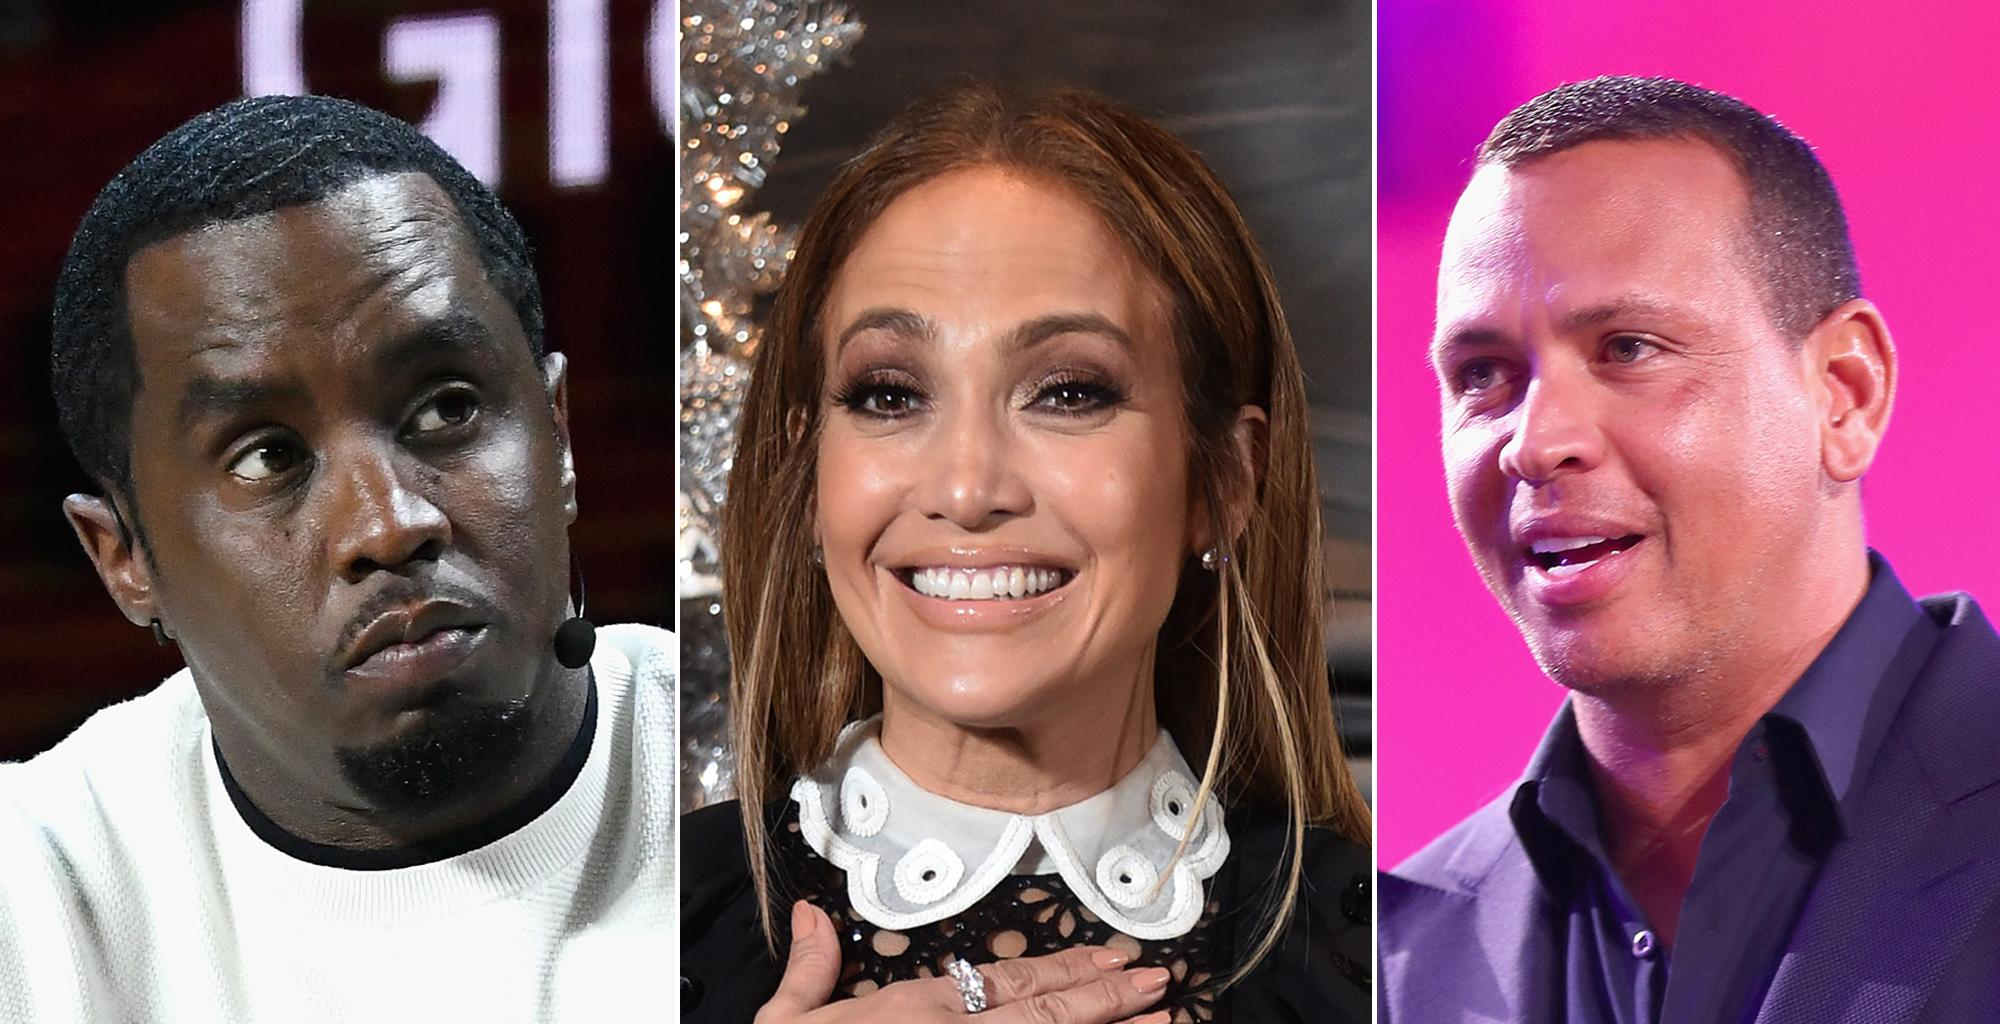 Jennifer Lopez Says Diddy Apologized To A-Rod For A Comment He Left Under Her Photo - Diddy's Fans Slam The Way J. Lo Speaks About Him Especially Now - See The Video